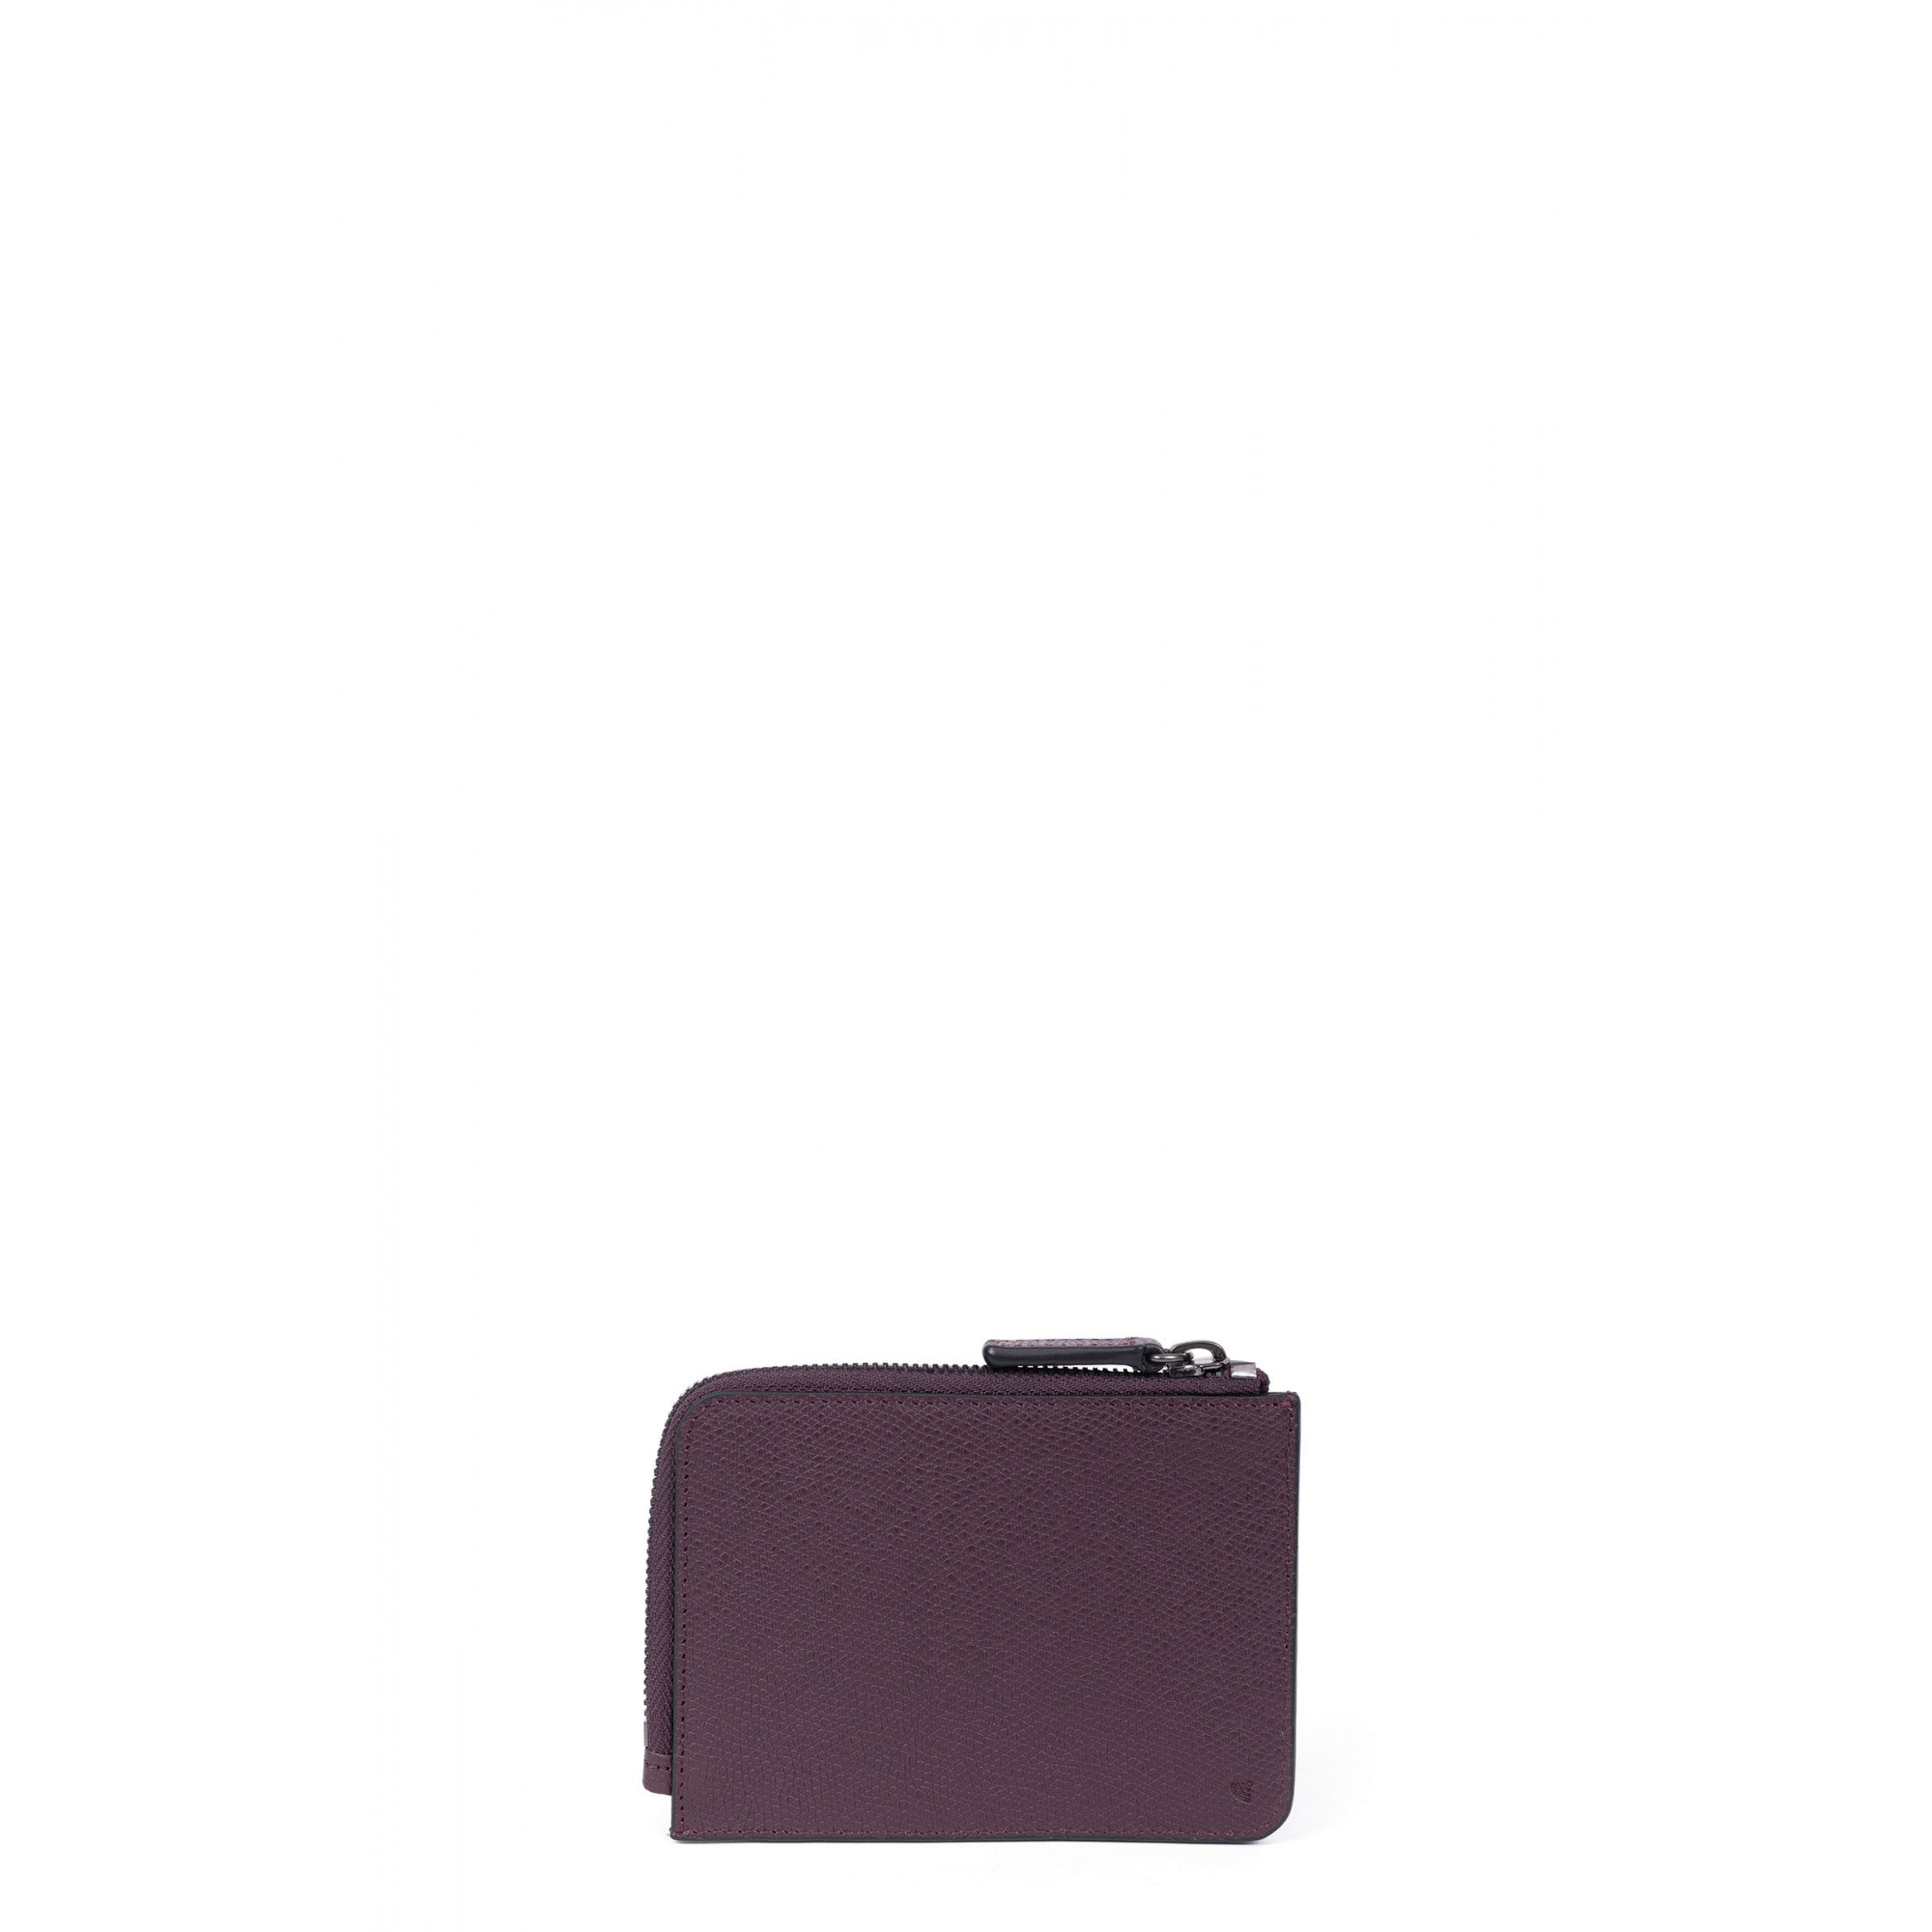 Premium grained leather purse